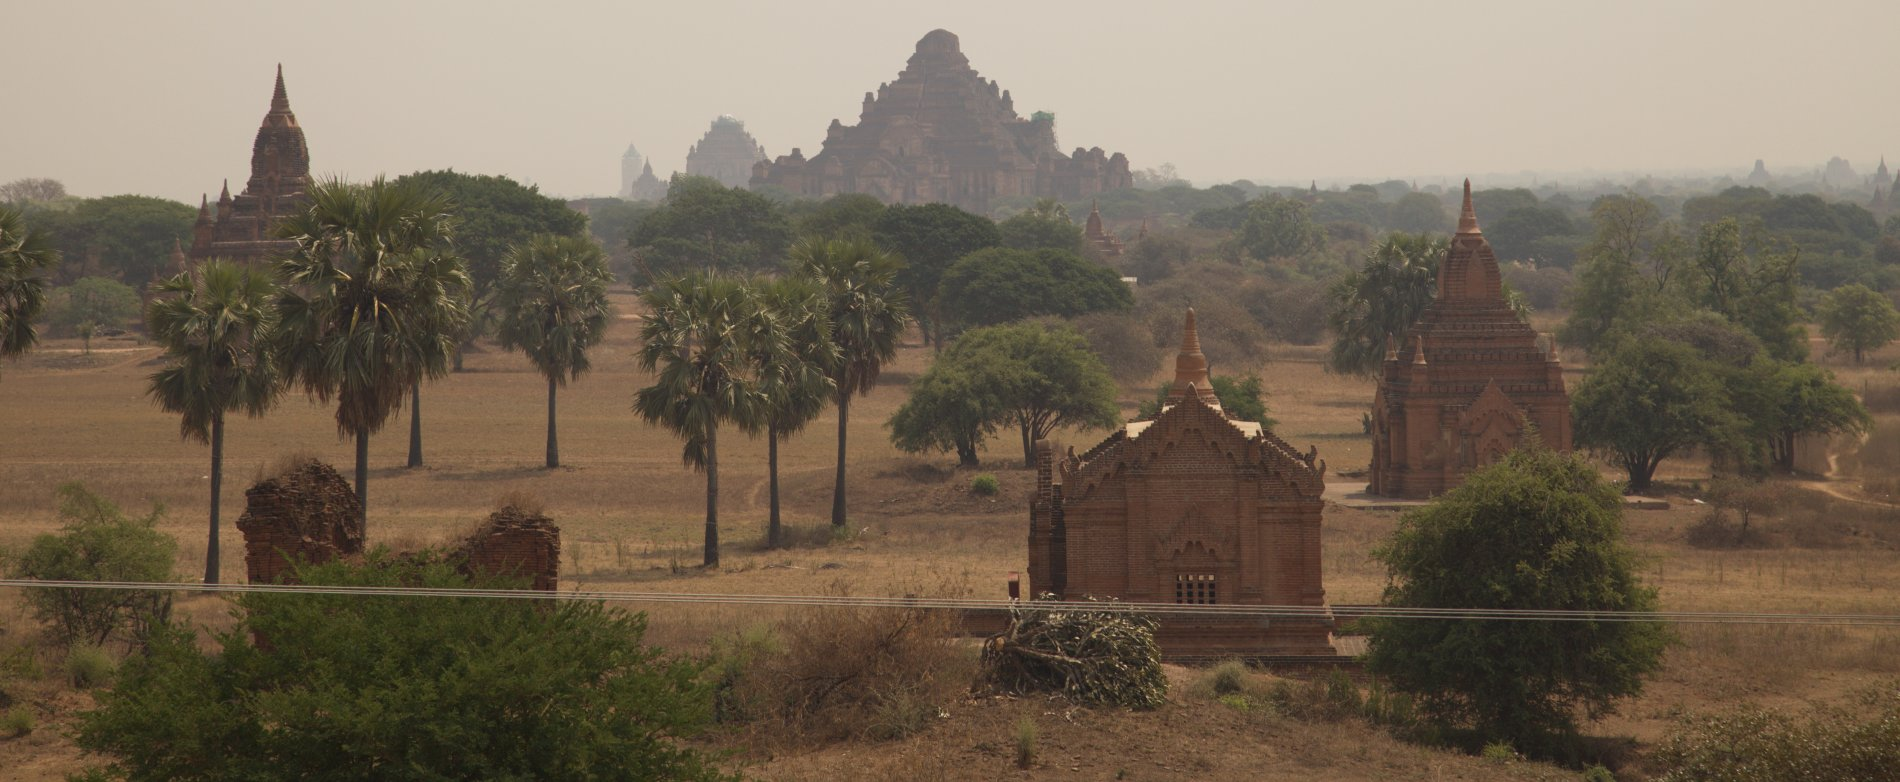 Bagan_274.jpg-commment